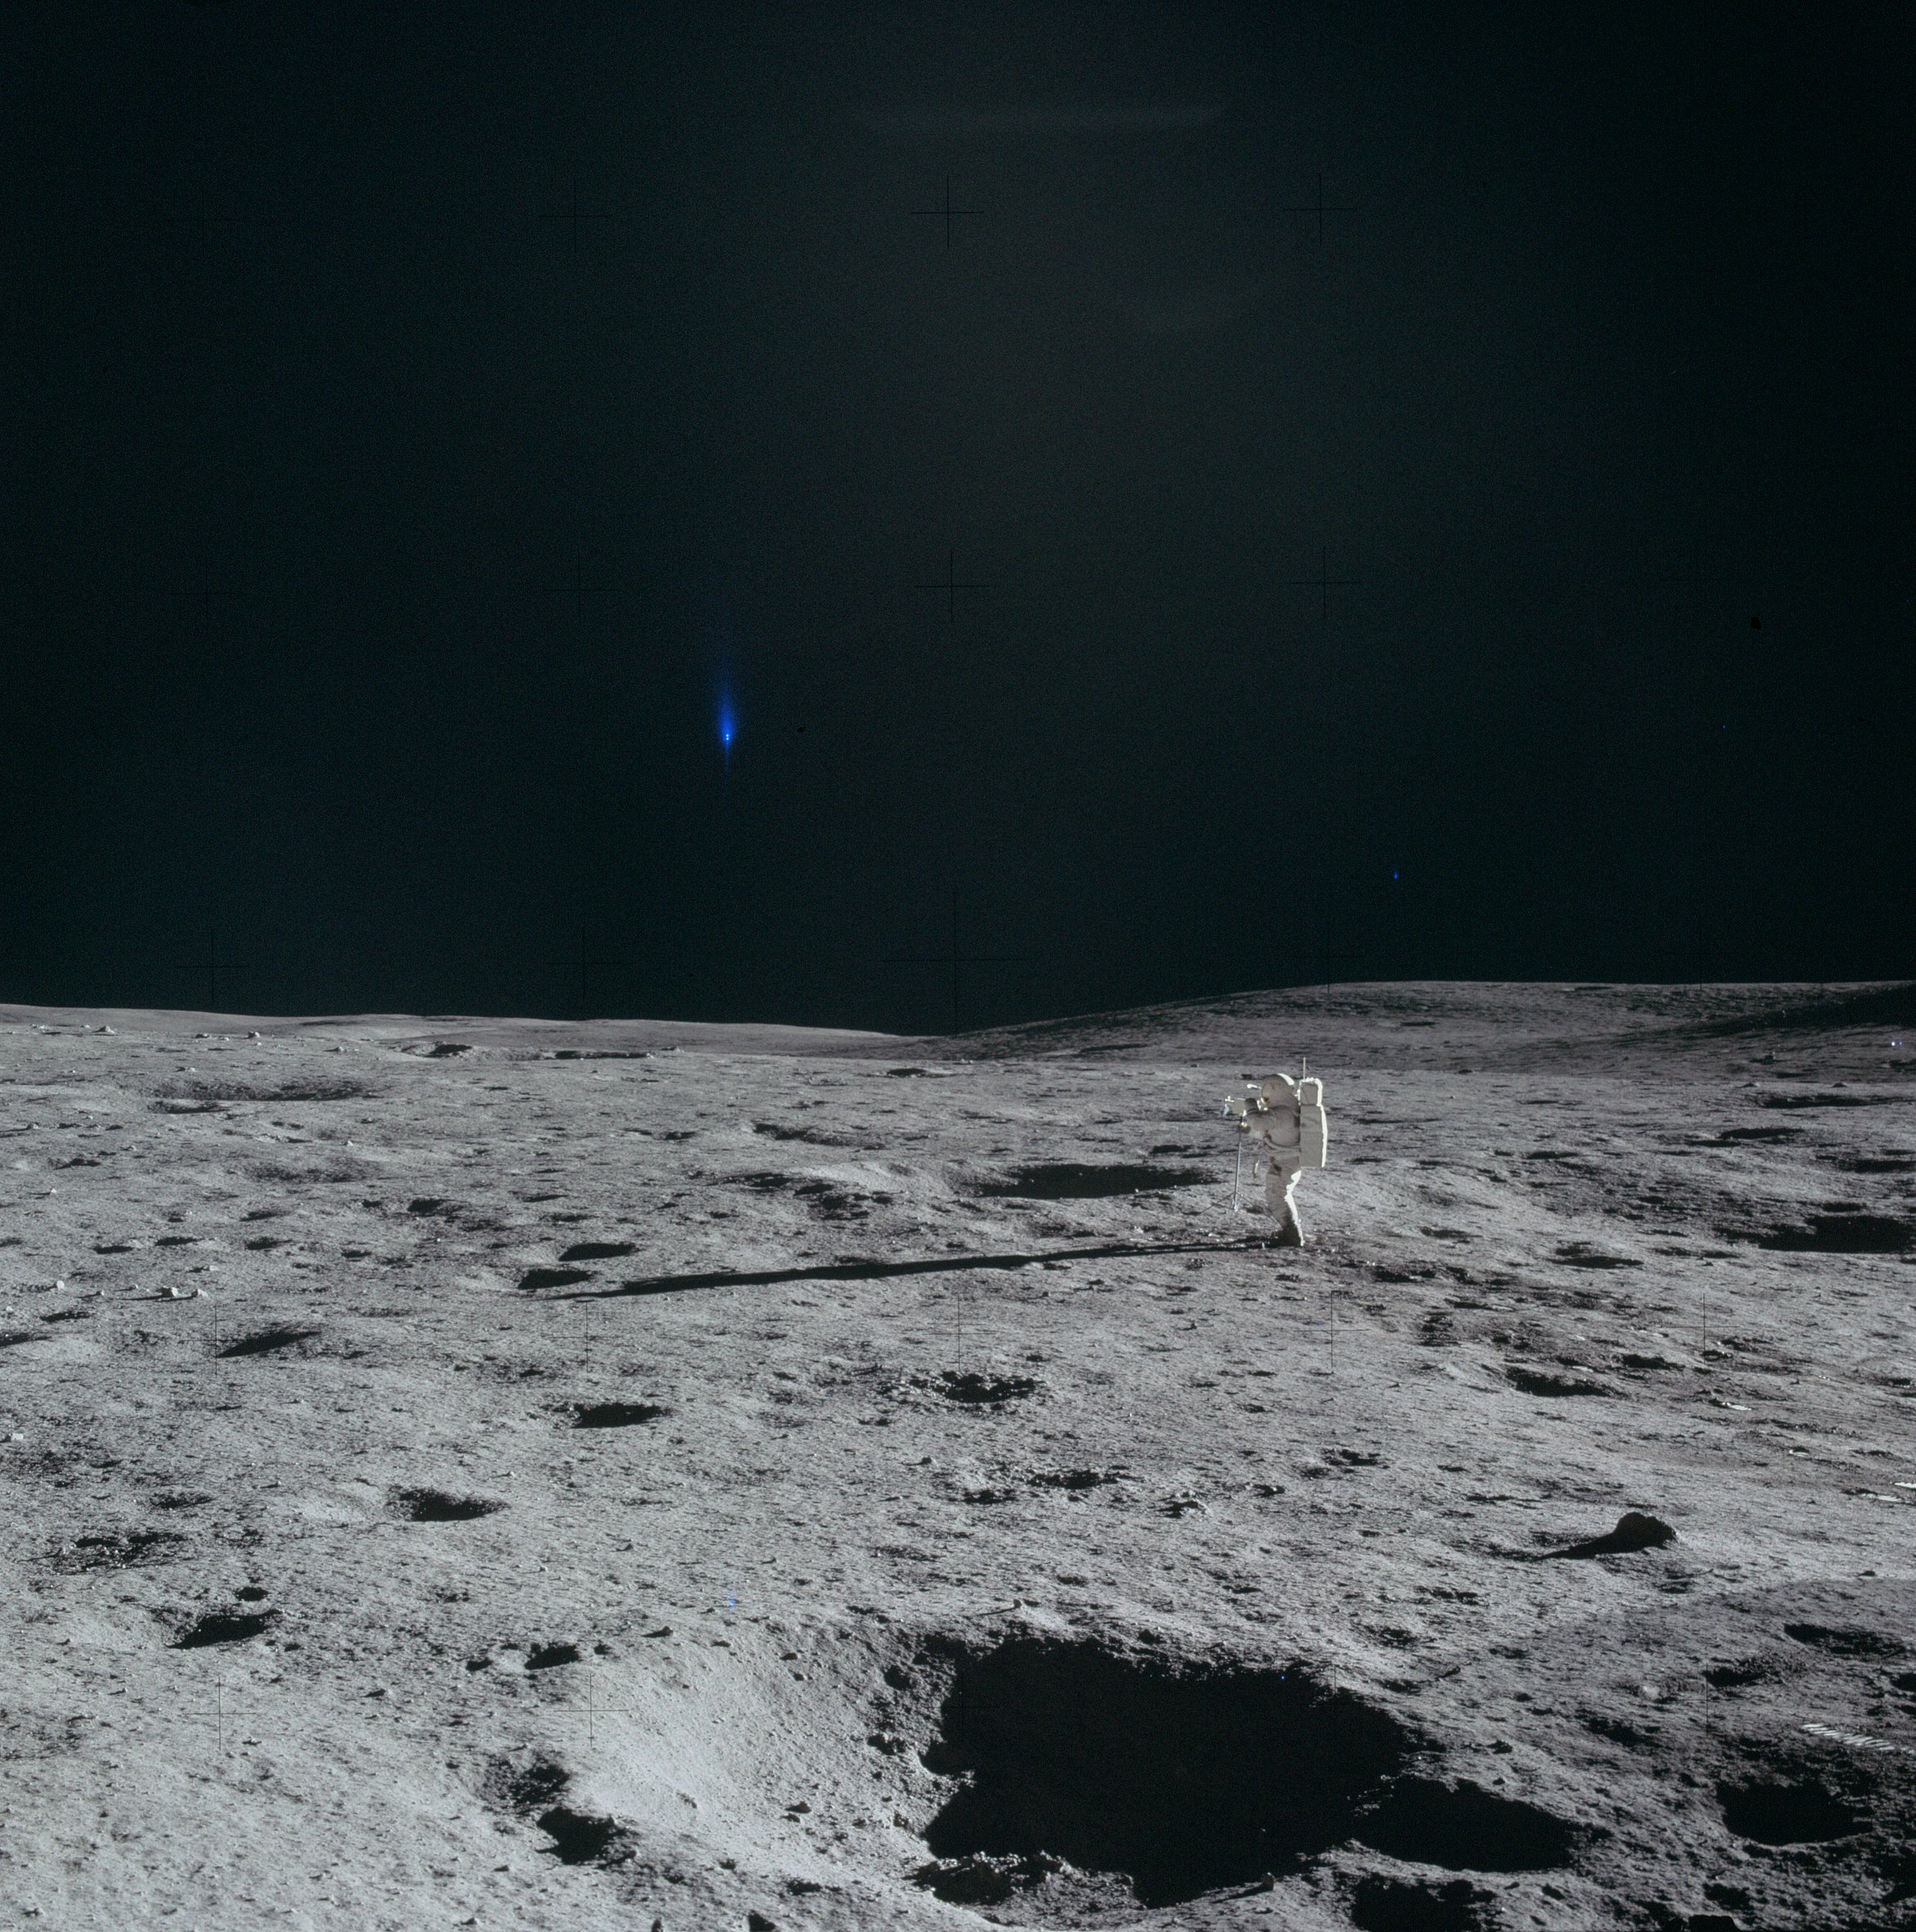 nasa archive photos of moon - photo #22